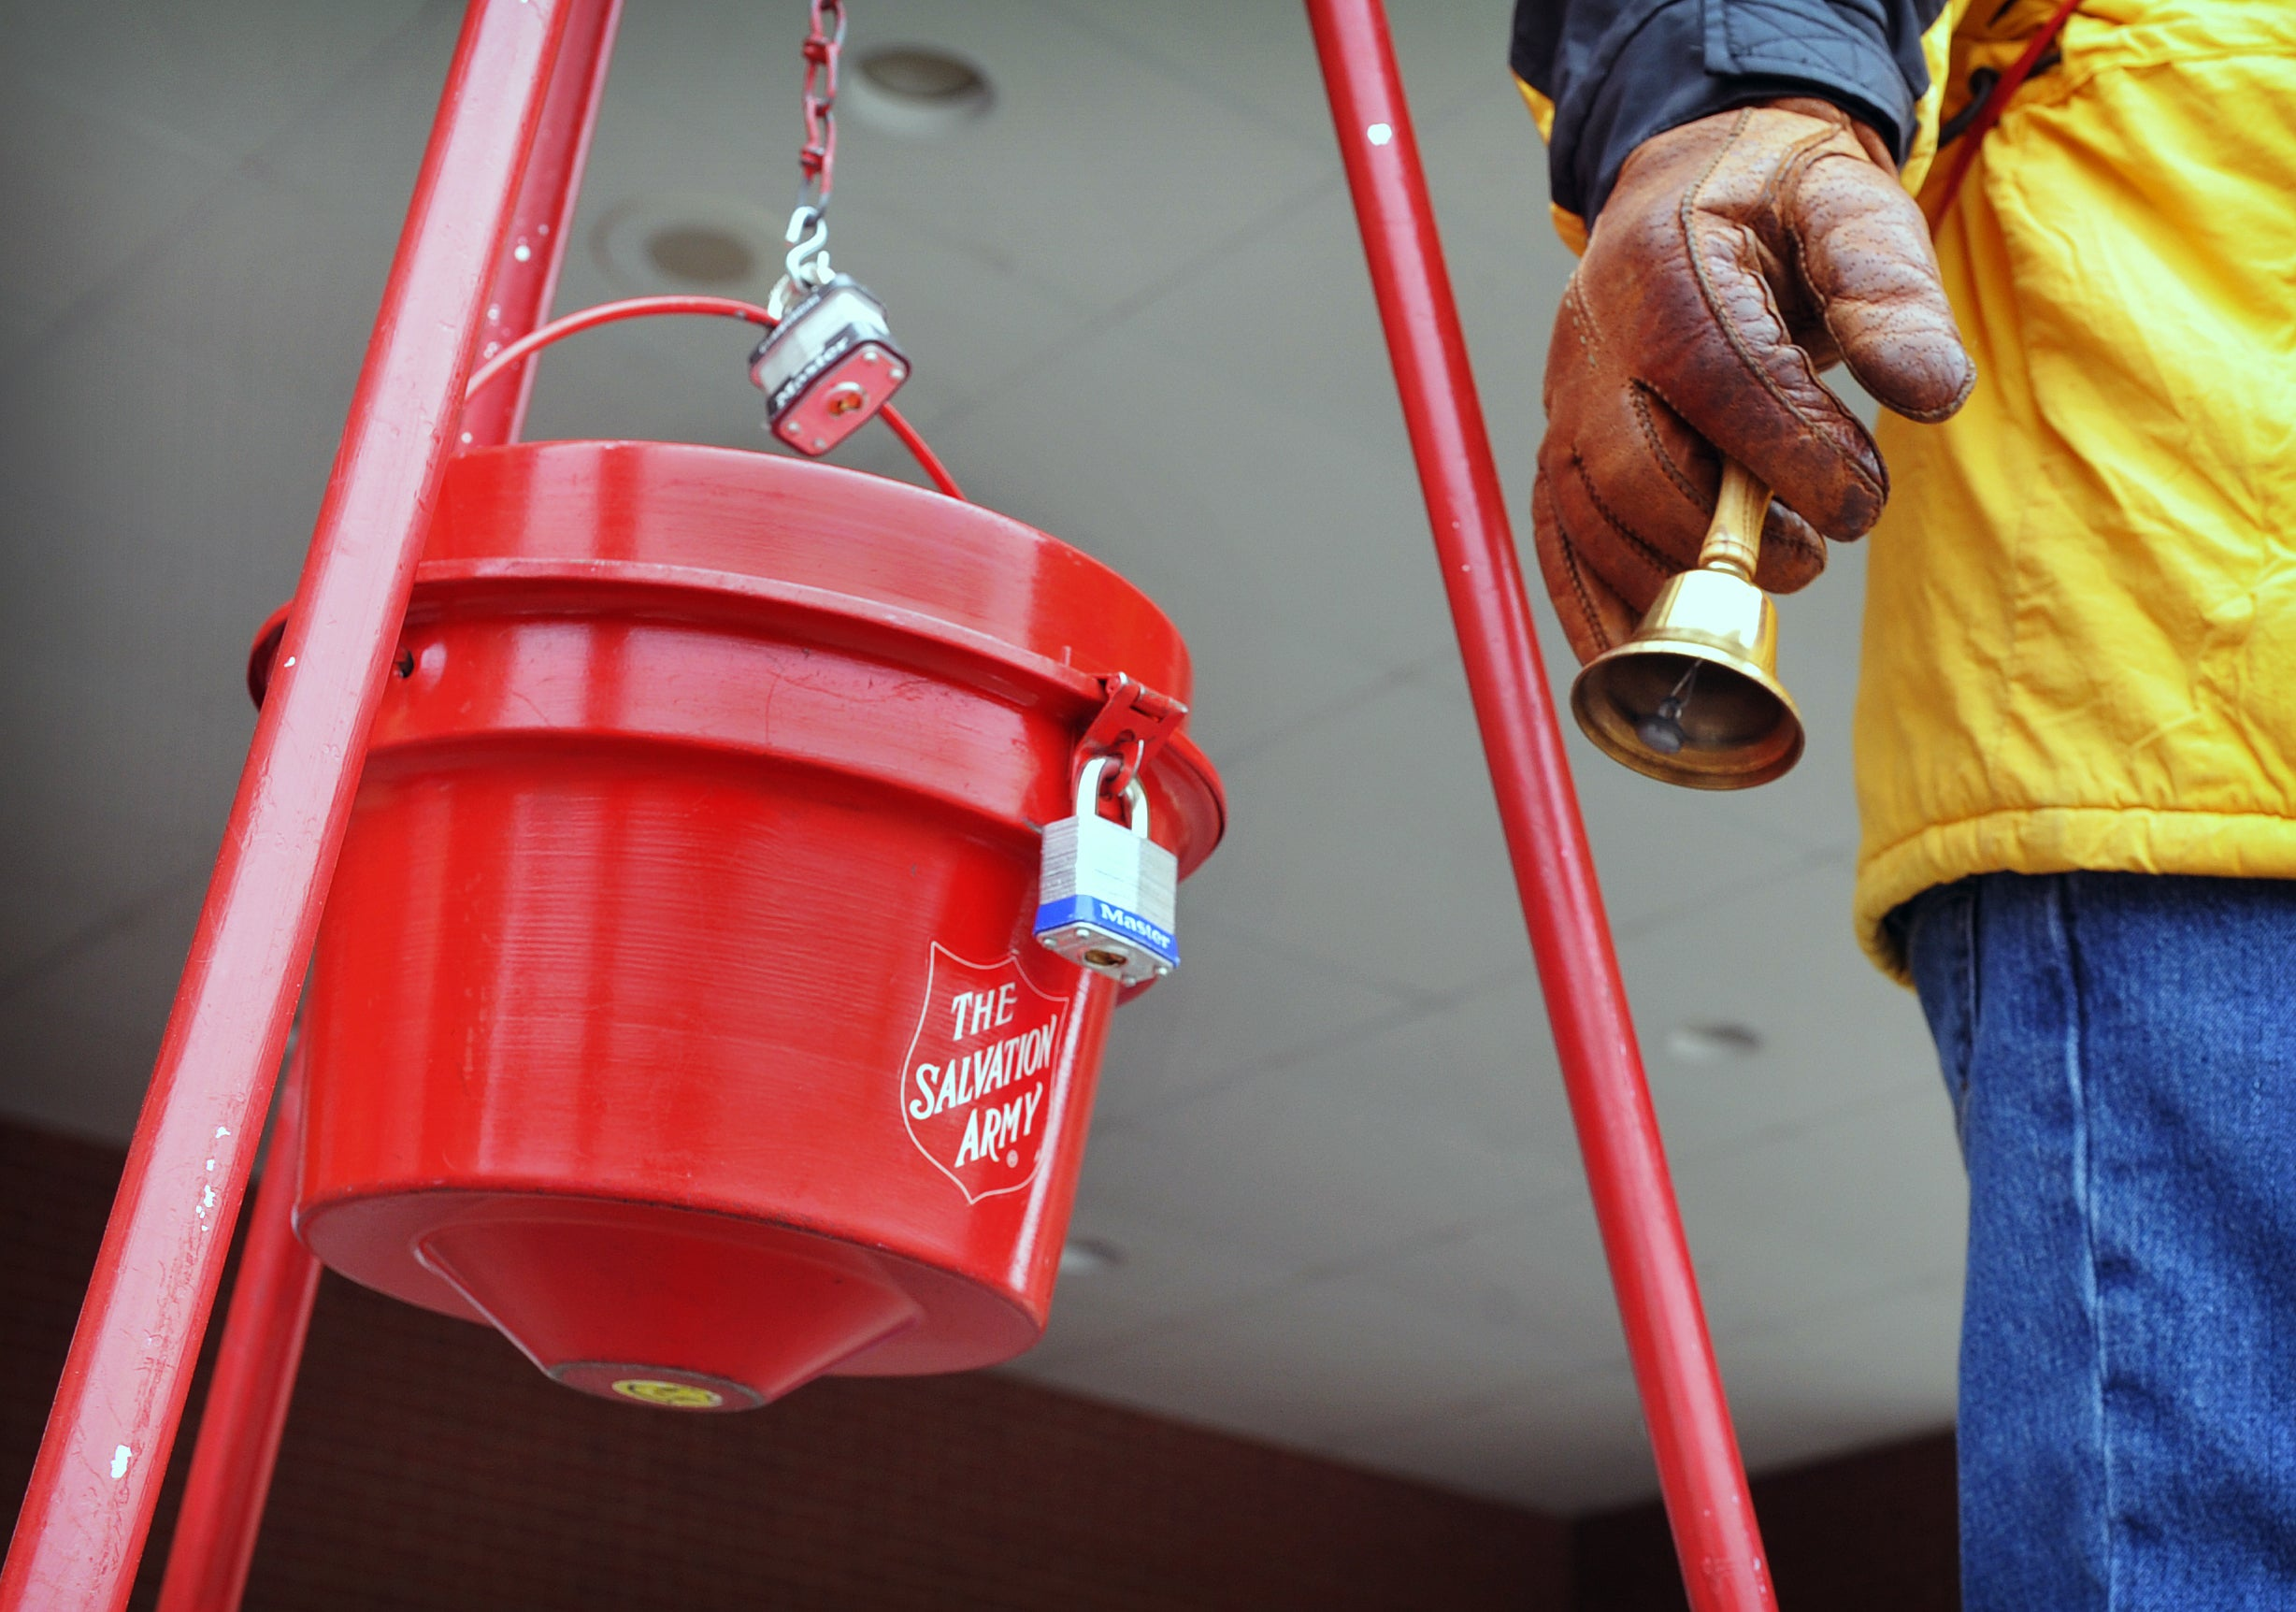 A Salvation Army donation kettle